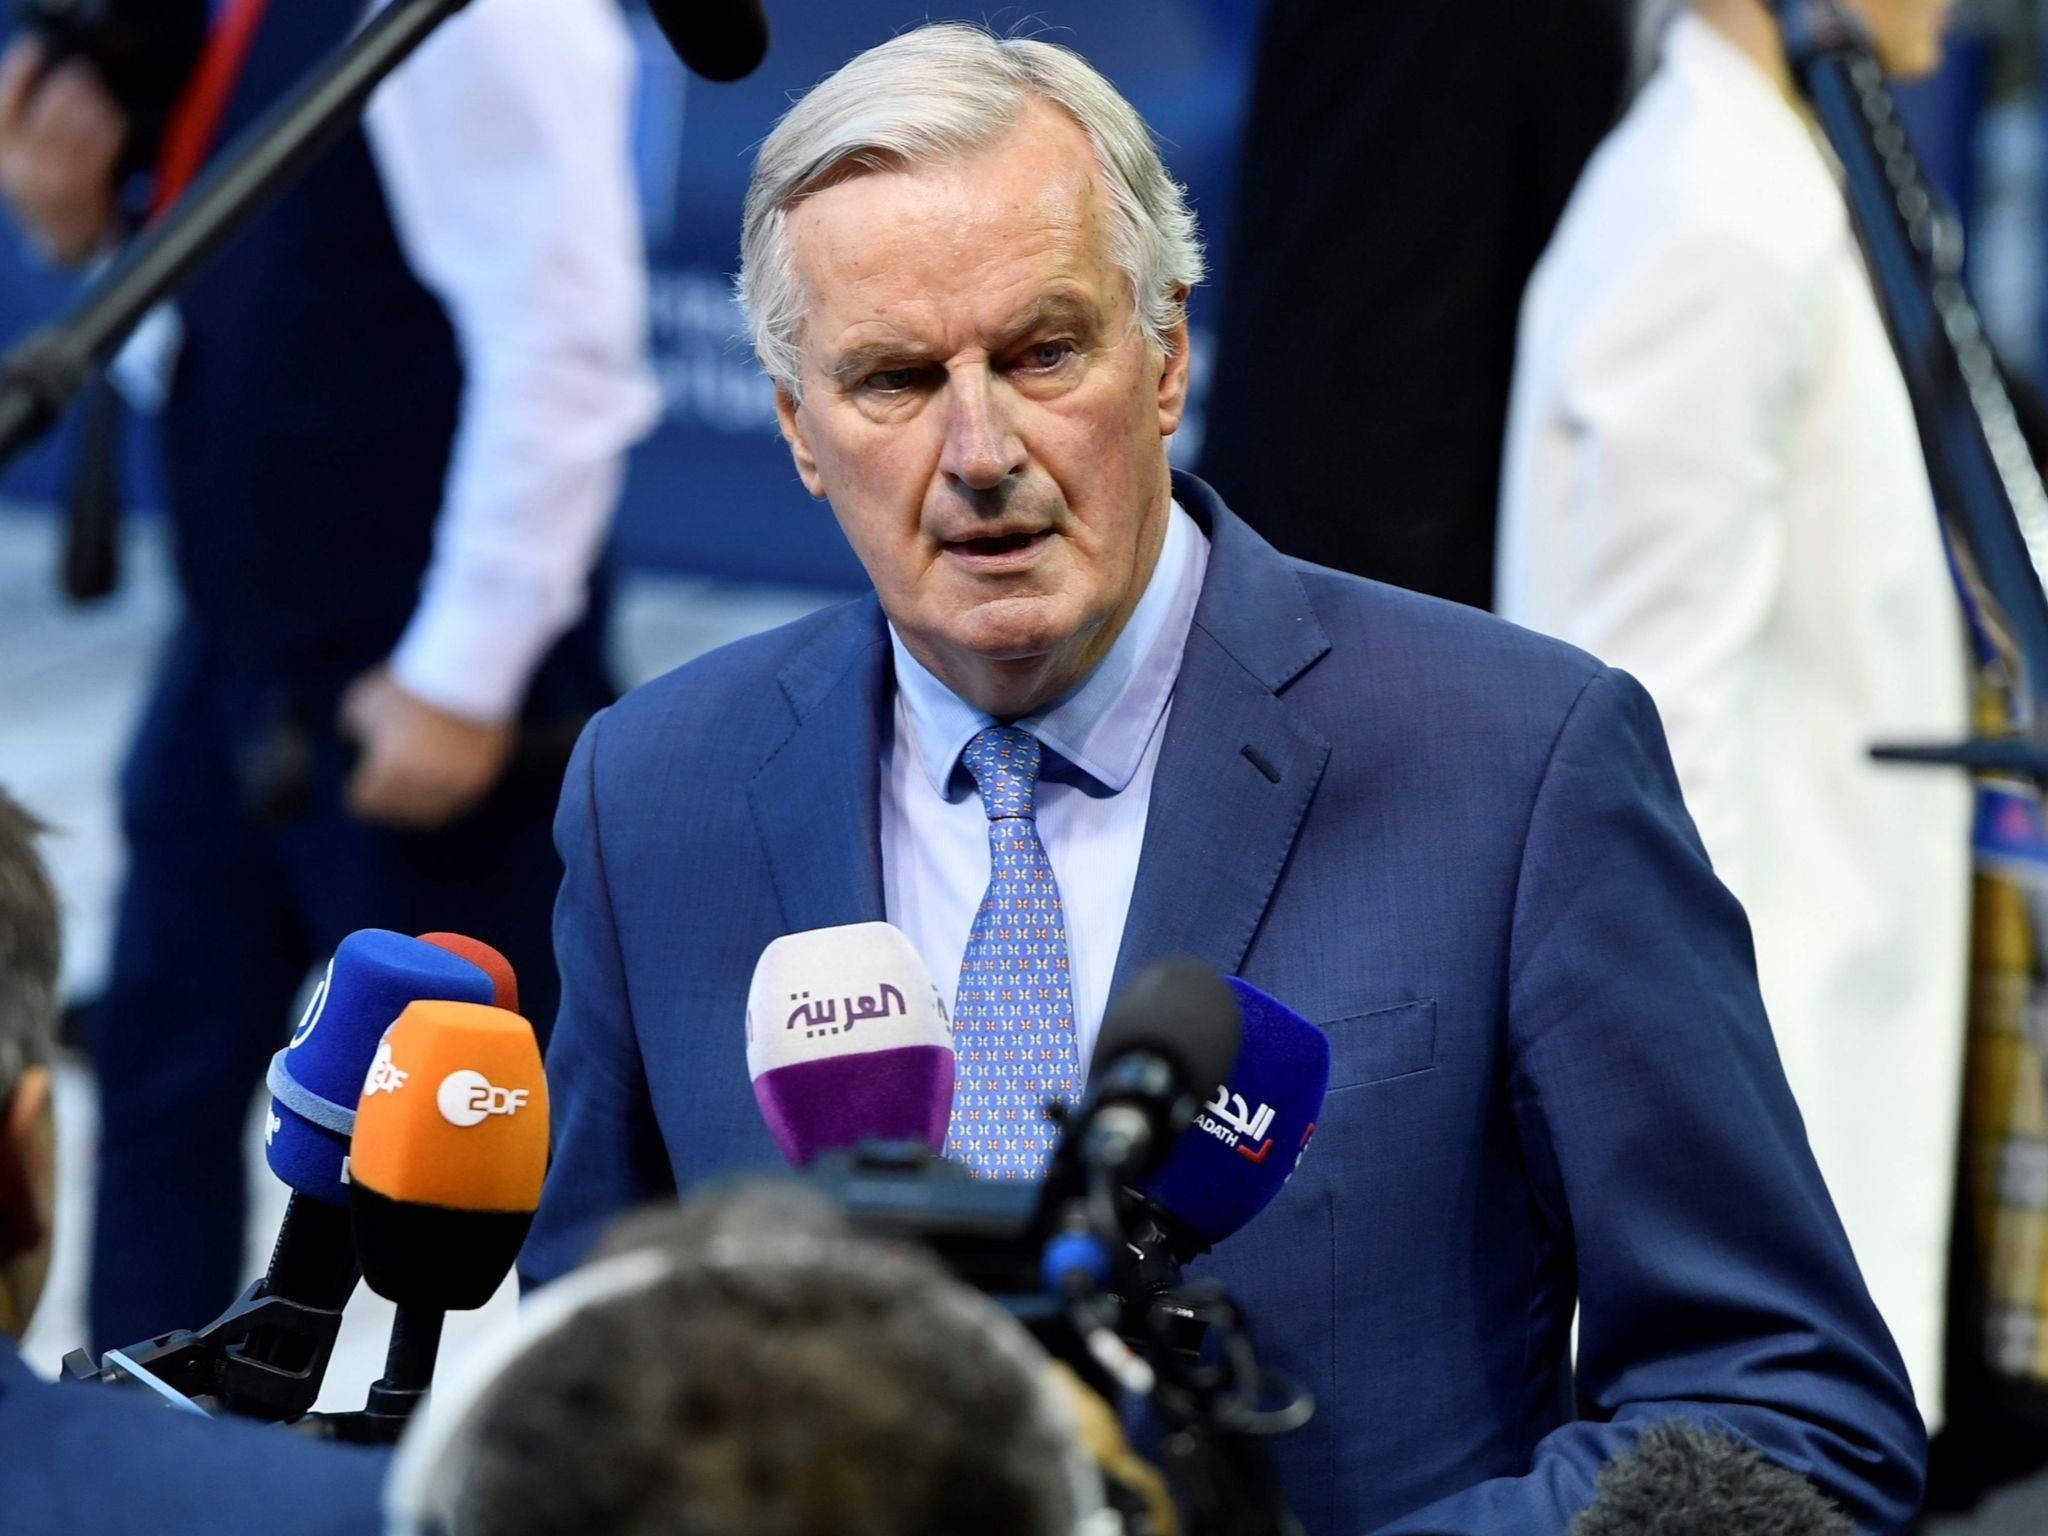 Michel Barnier appointed to lead future negotiations with UK after B…